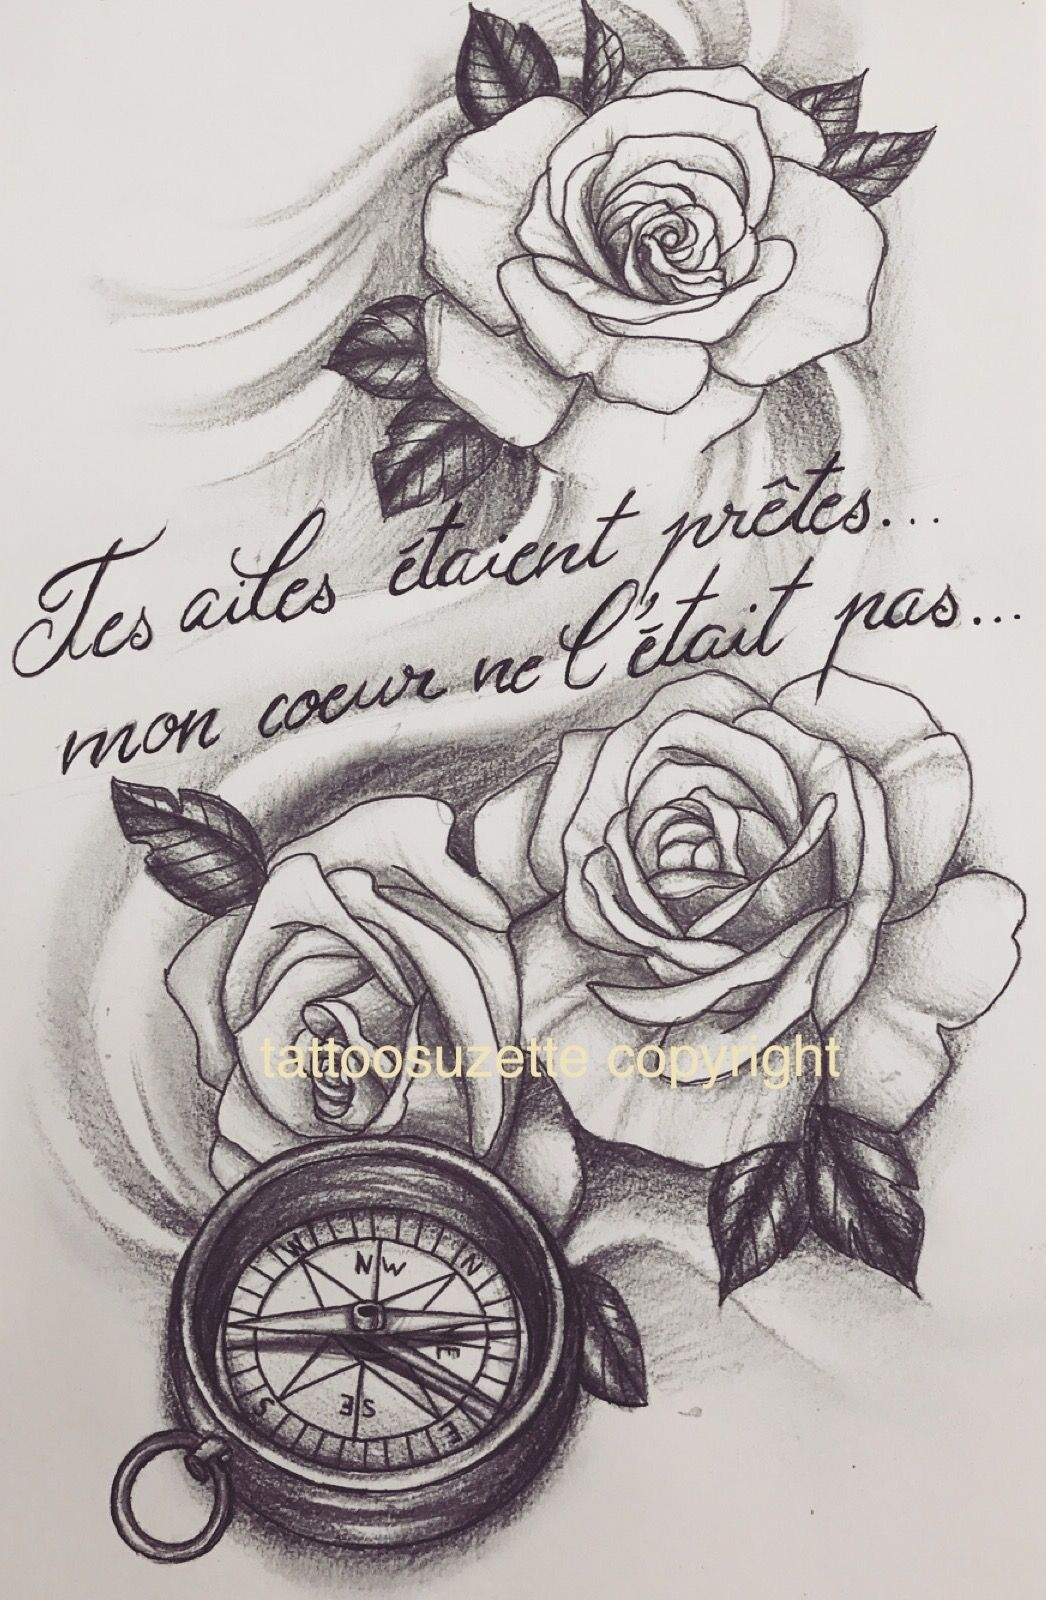 rose compass tattoo design clock pocketwatch clocktattoo tattooclock pocketwatchtattoo. Black Bedroom Furniture Sets. Home Design Ideas